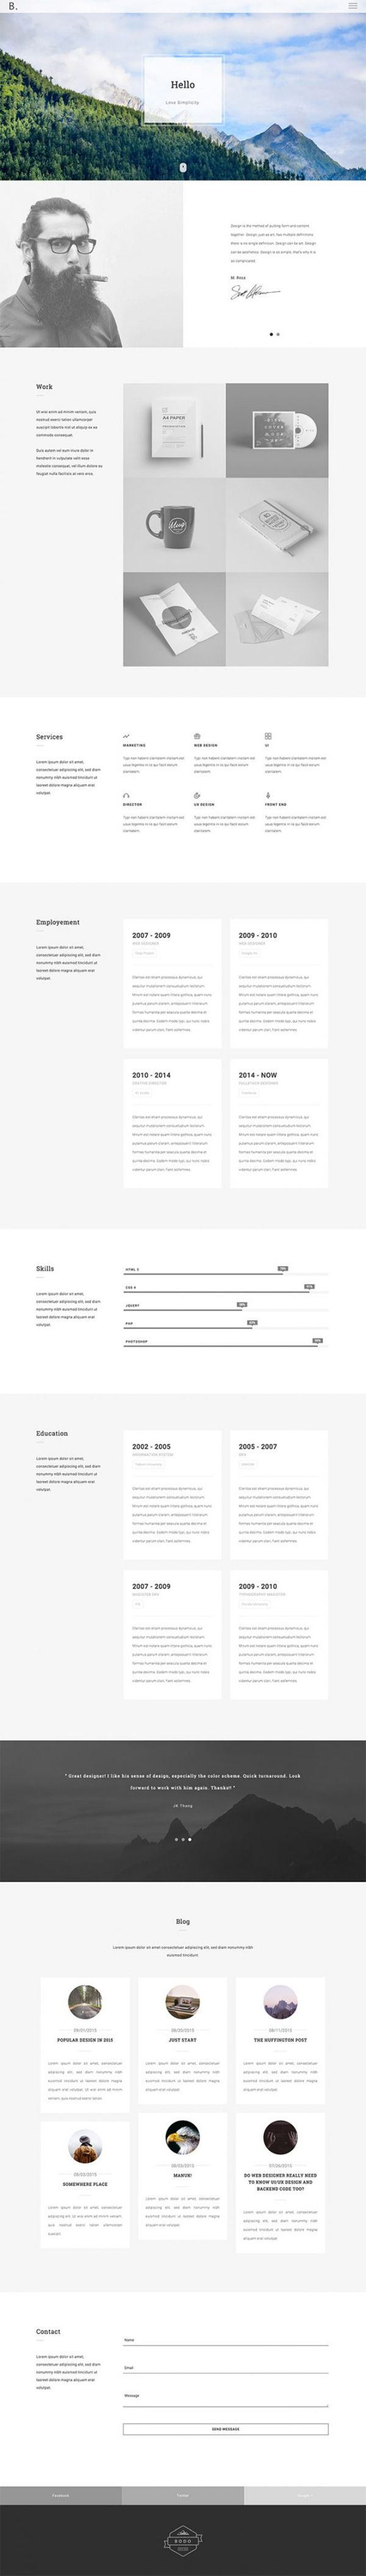 OAK is a #free #HTML #portfolio #template designed by EliteFingers. This template is a great solution for designers, architectures, photographers and any kind of creative people who need a website for showcasing their own works.